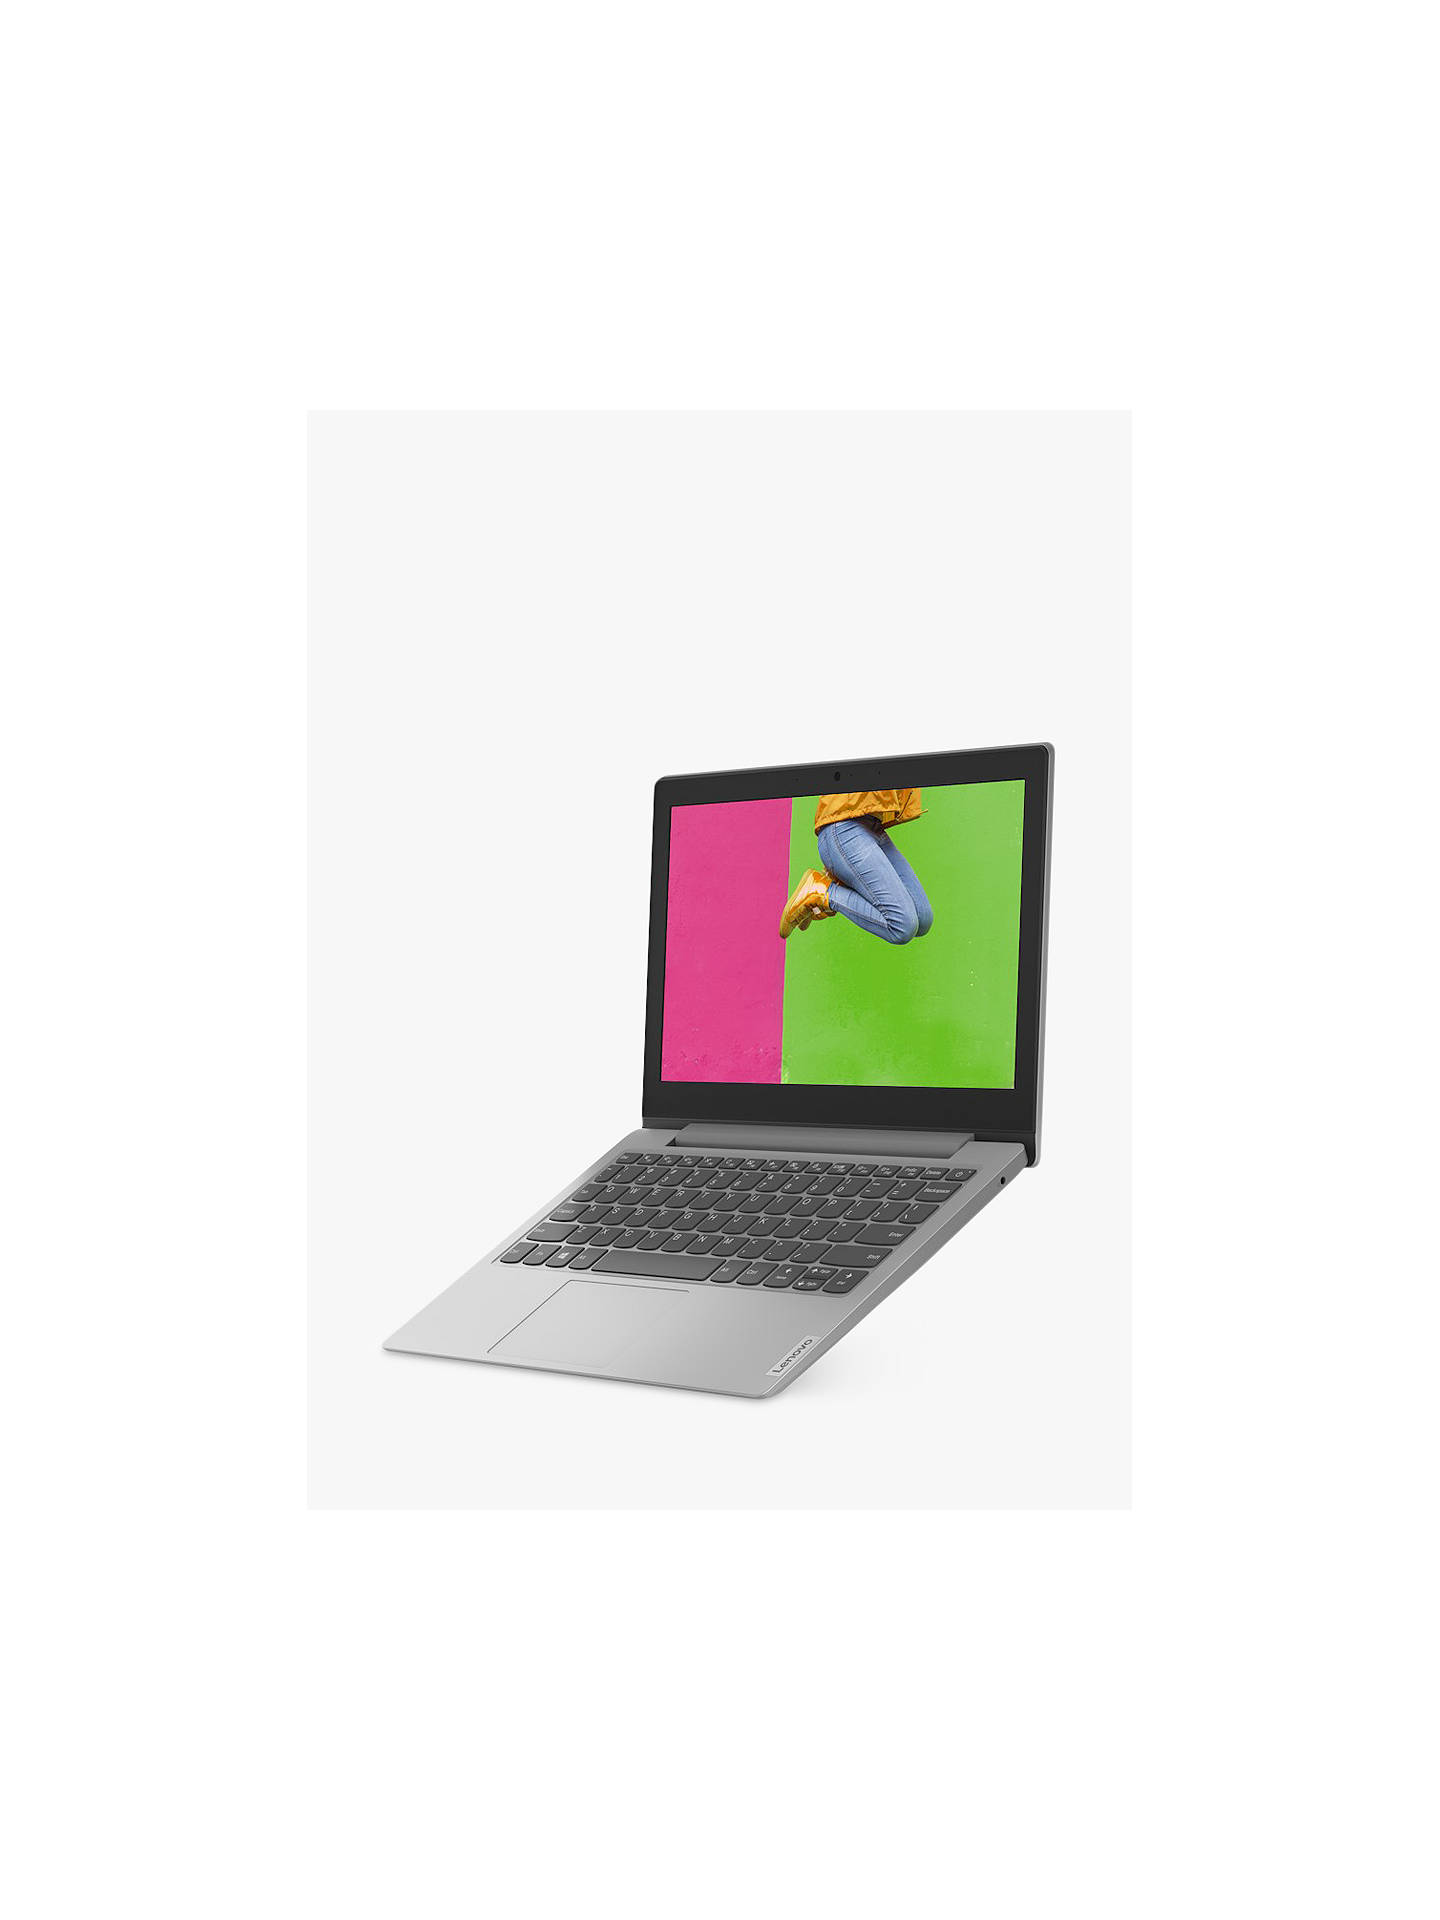 Lenovo Ideapad Slim 1 11ast 05 Laptop Amd A4 Processor 4gb Ram 64gb Emmc 11 6 Display Platinum Grey At John Lewis Partners